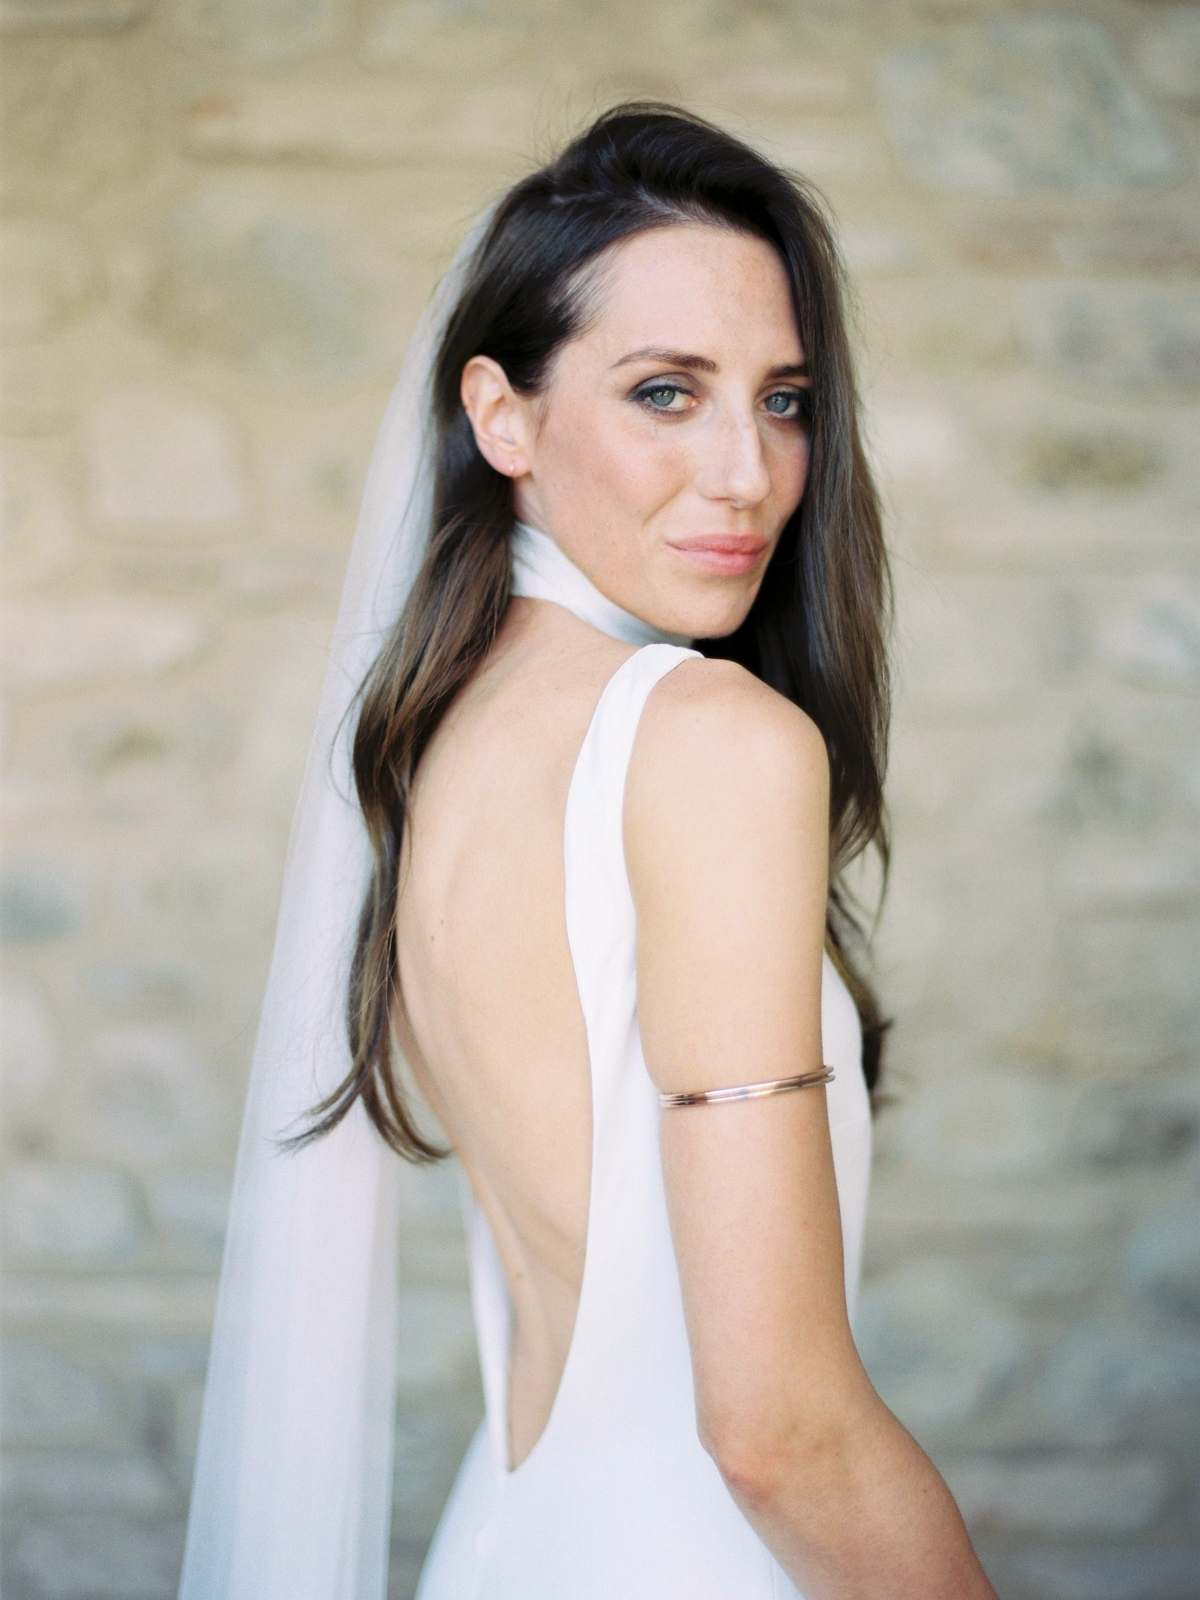 BRIDES ...for that classic, modern wedding